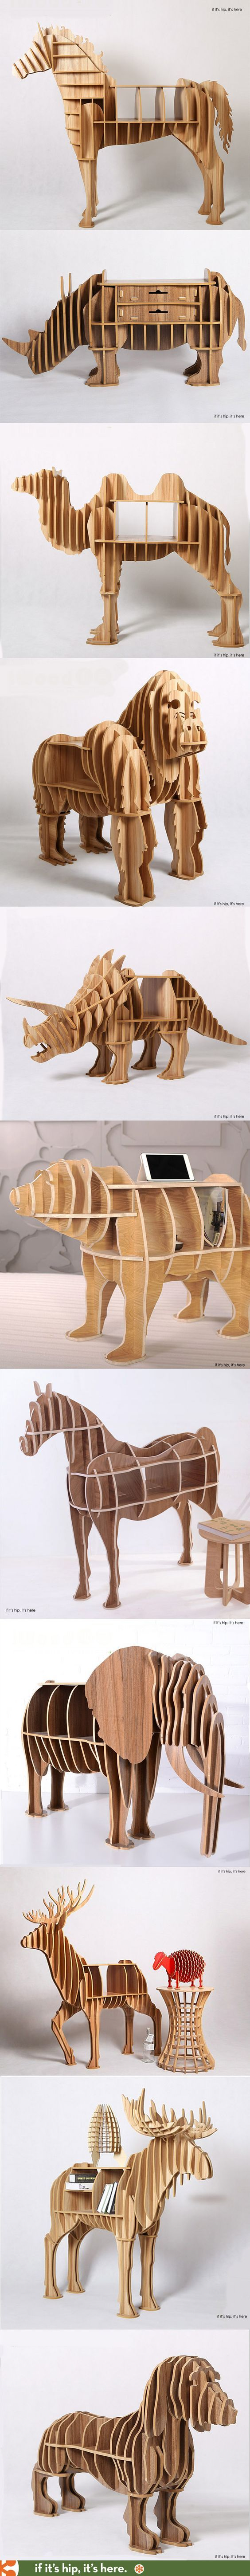 The 20 most awesome animal bookcases, desks and end tables you can buy. They ship flat-packed and are easily assembled without nails or glue. More at http://www.ifitshipitshere.com/awesome-animal-furniture/